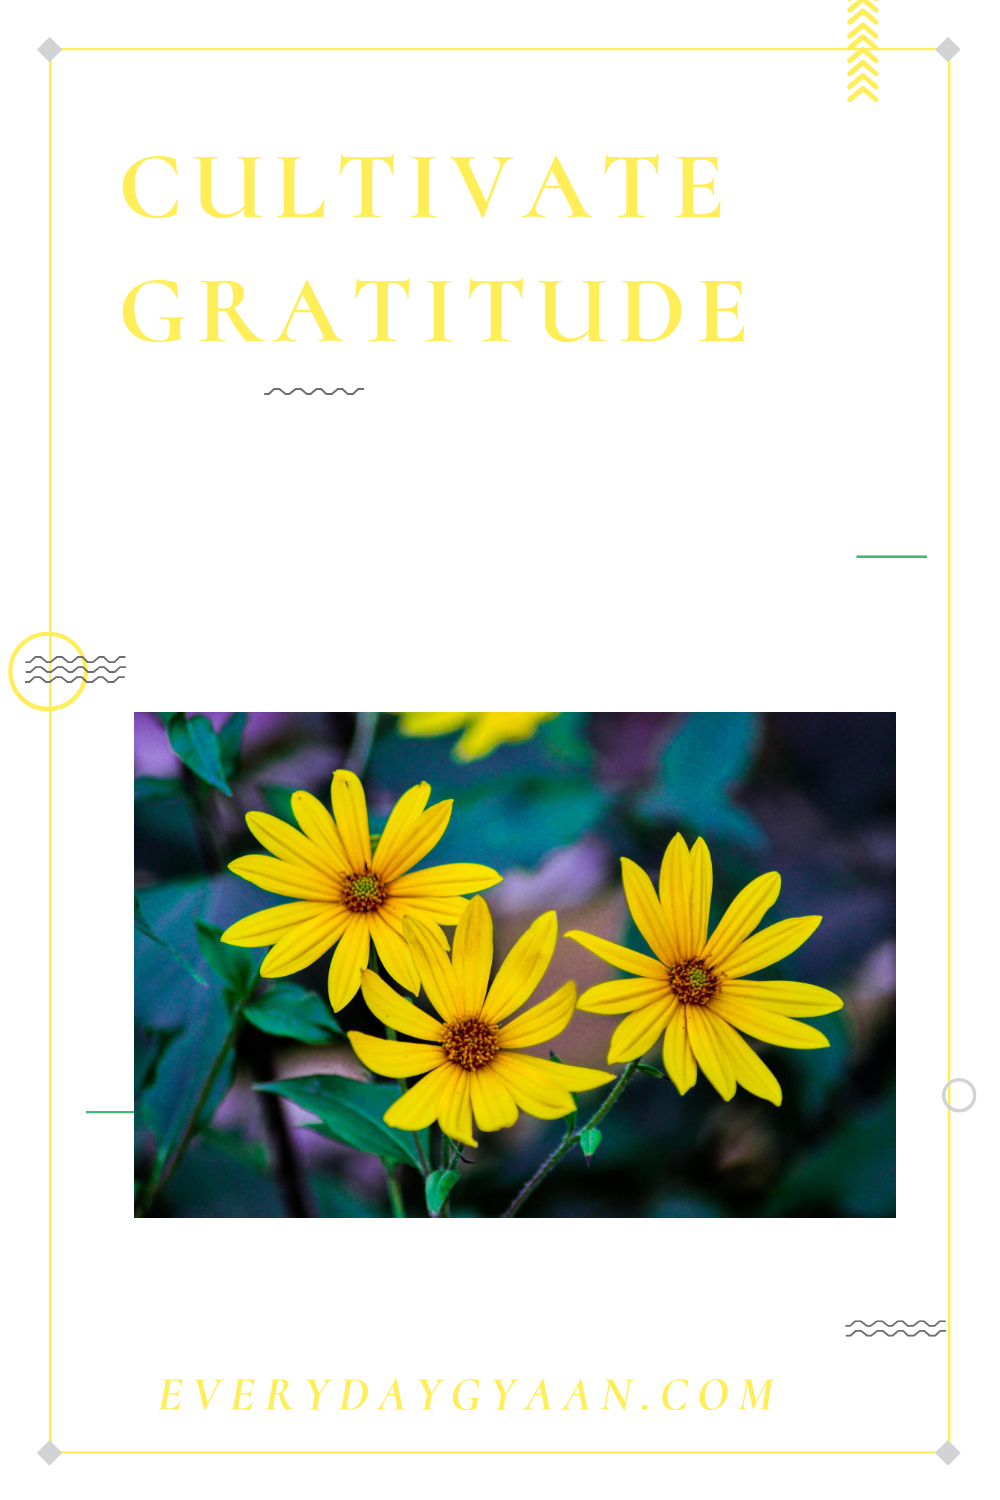 Cultivating Gratitude During The Pandemic